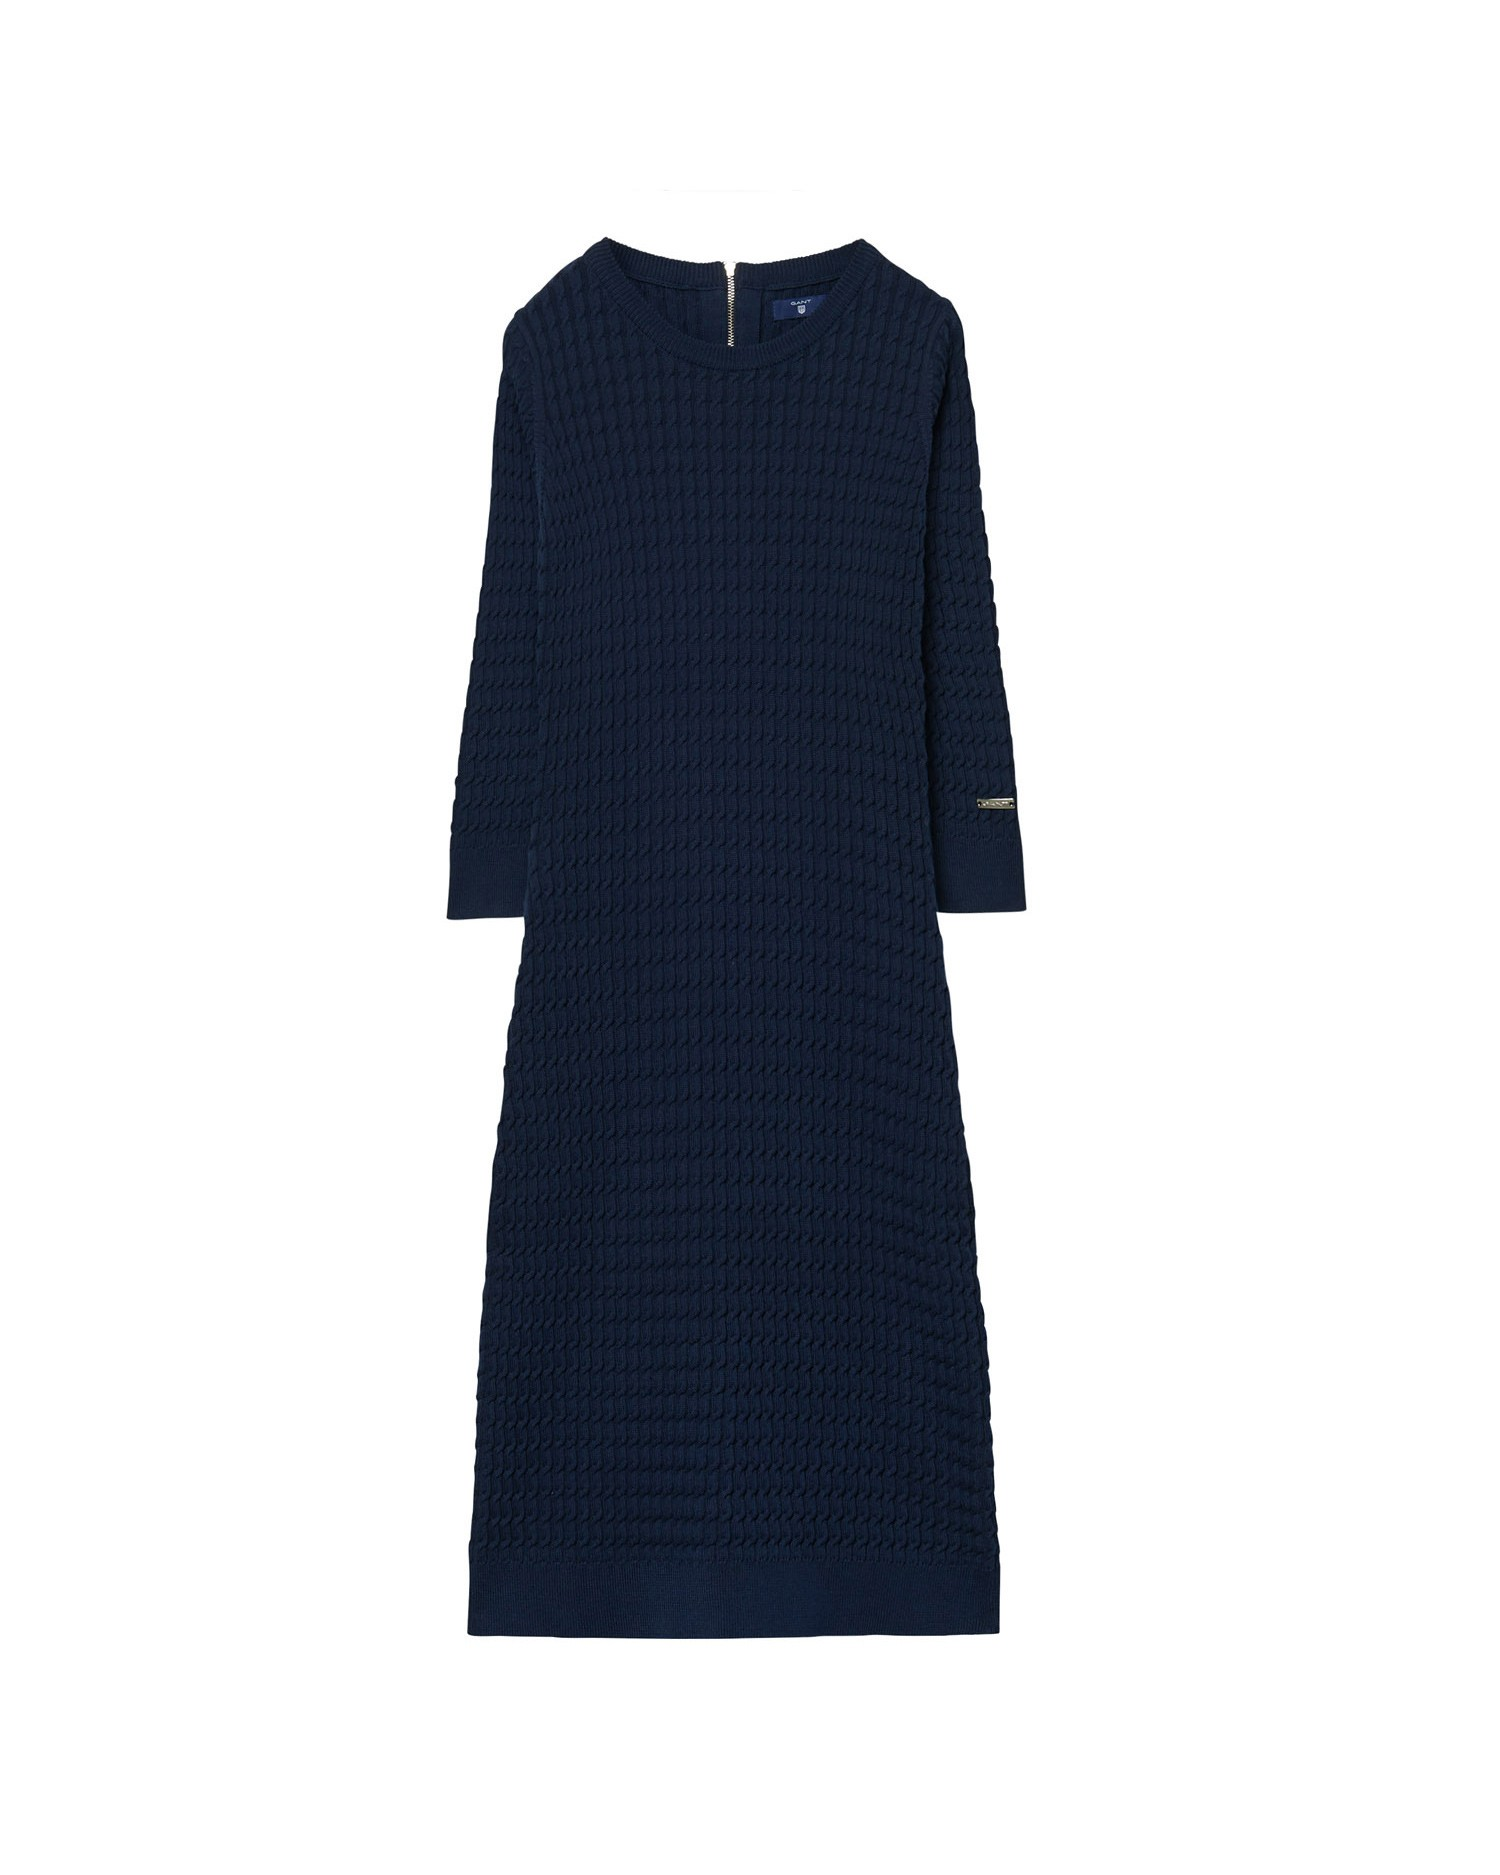 GANT Women's Fine Cable Dress - 450014